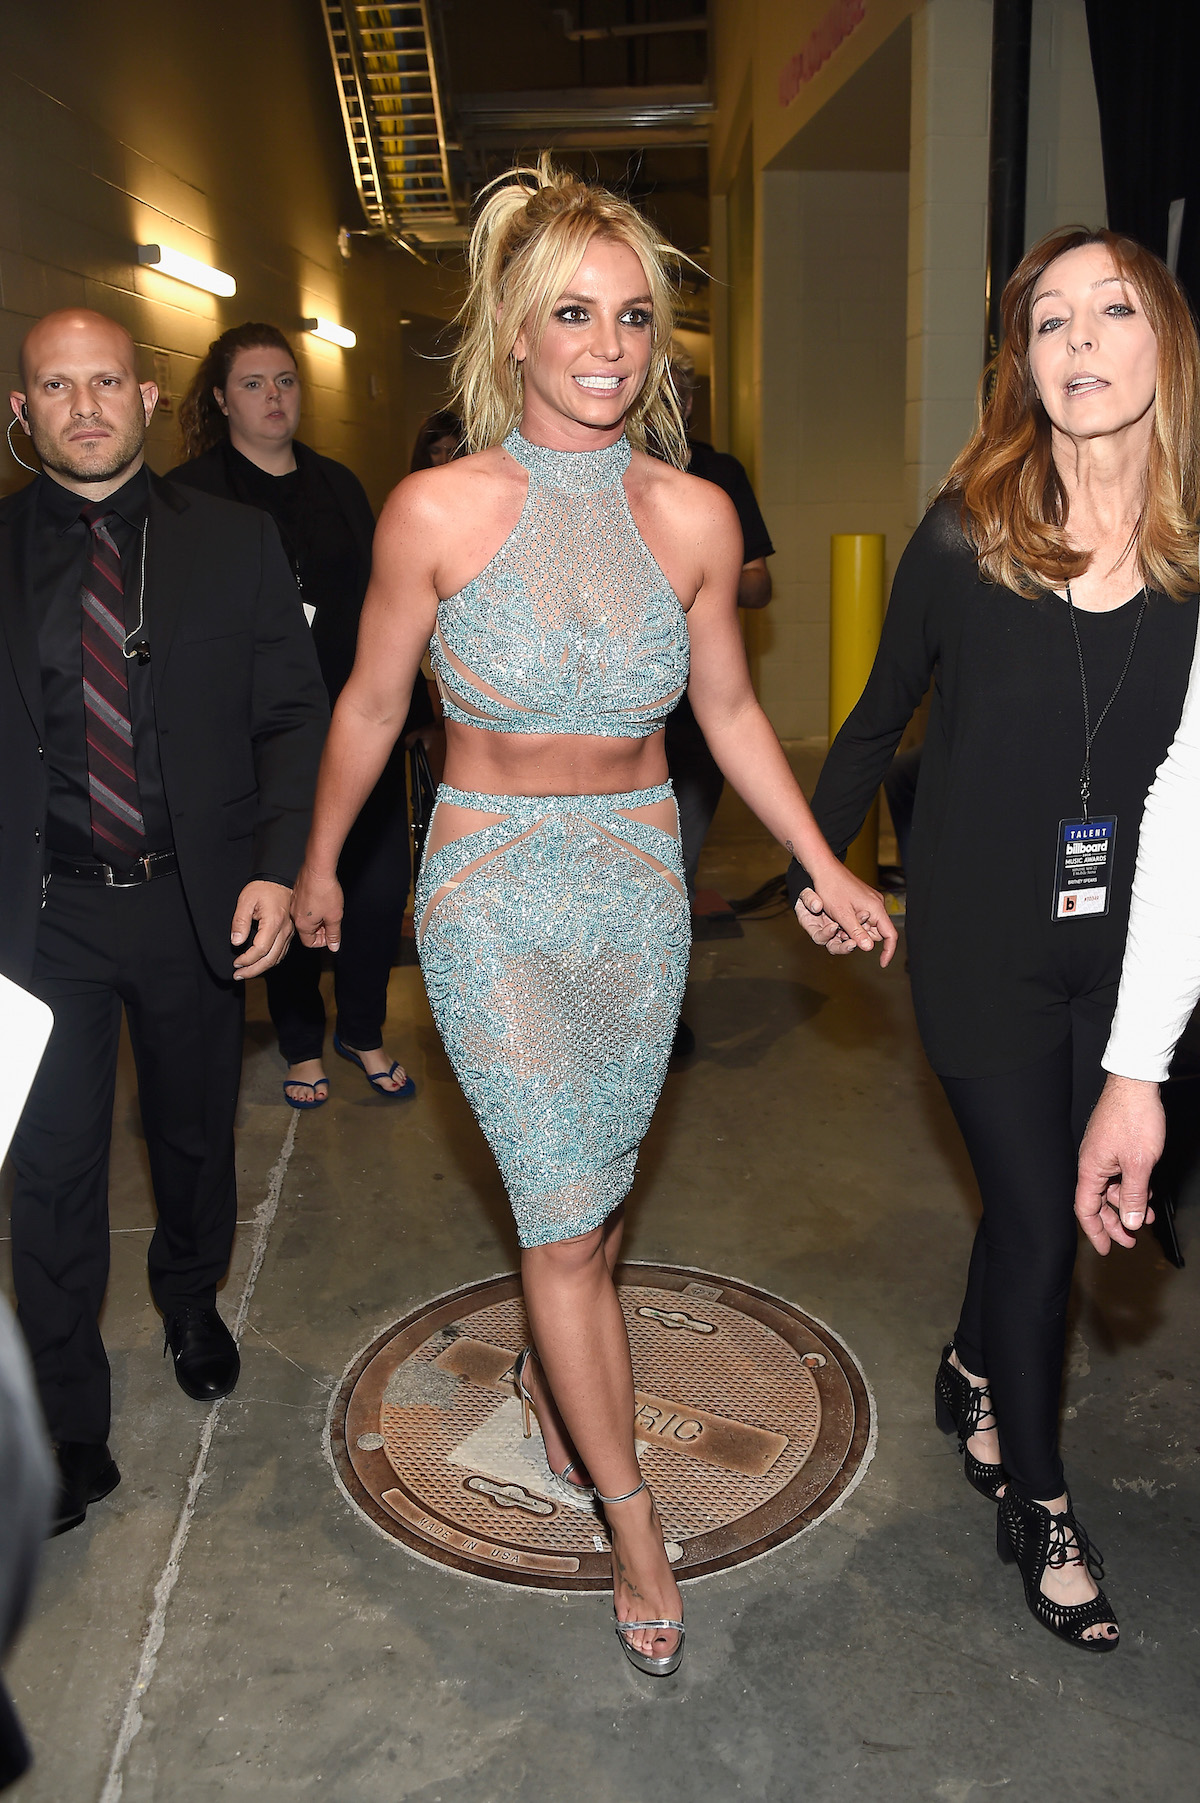 Every Photo You Need Of Britney Spears At The 2016 Bbmas